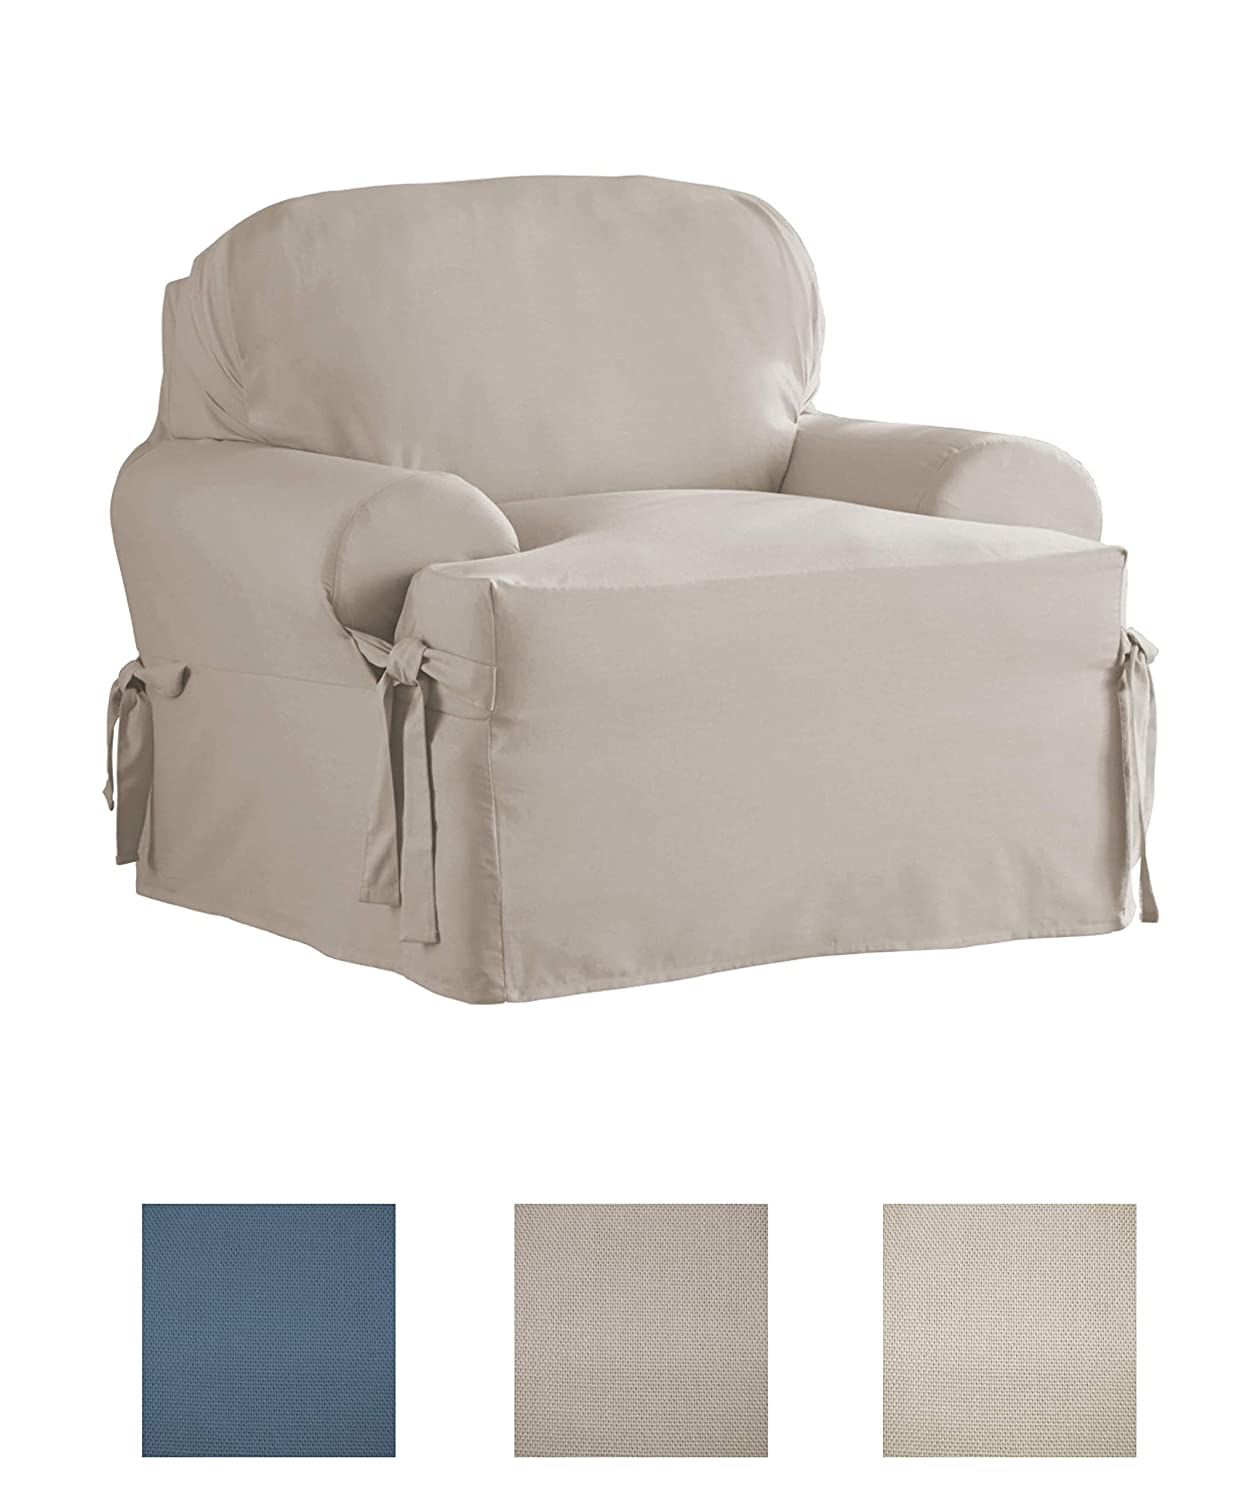 038533833949 Serta Relaxed Fit Durable Woven Linen Canvas Furniture Slipcover T-Chair, Indigo